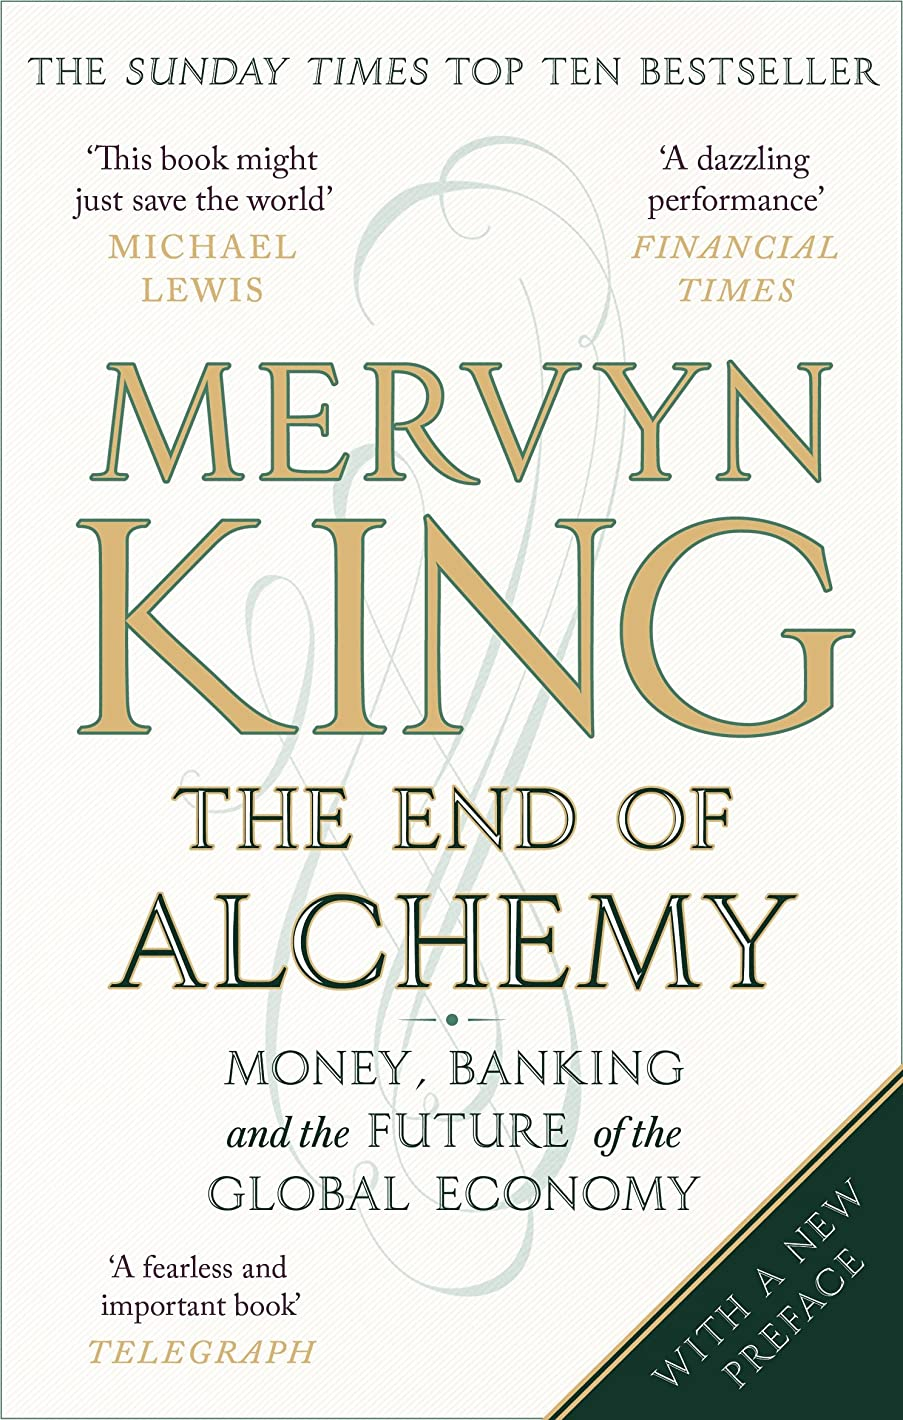 気づく周術期ボトルネックThe End of Alchemy: Money, Banking and the Future of the Global Economy (English Edition)